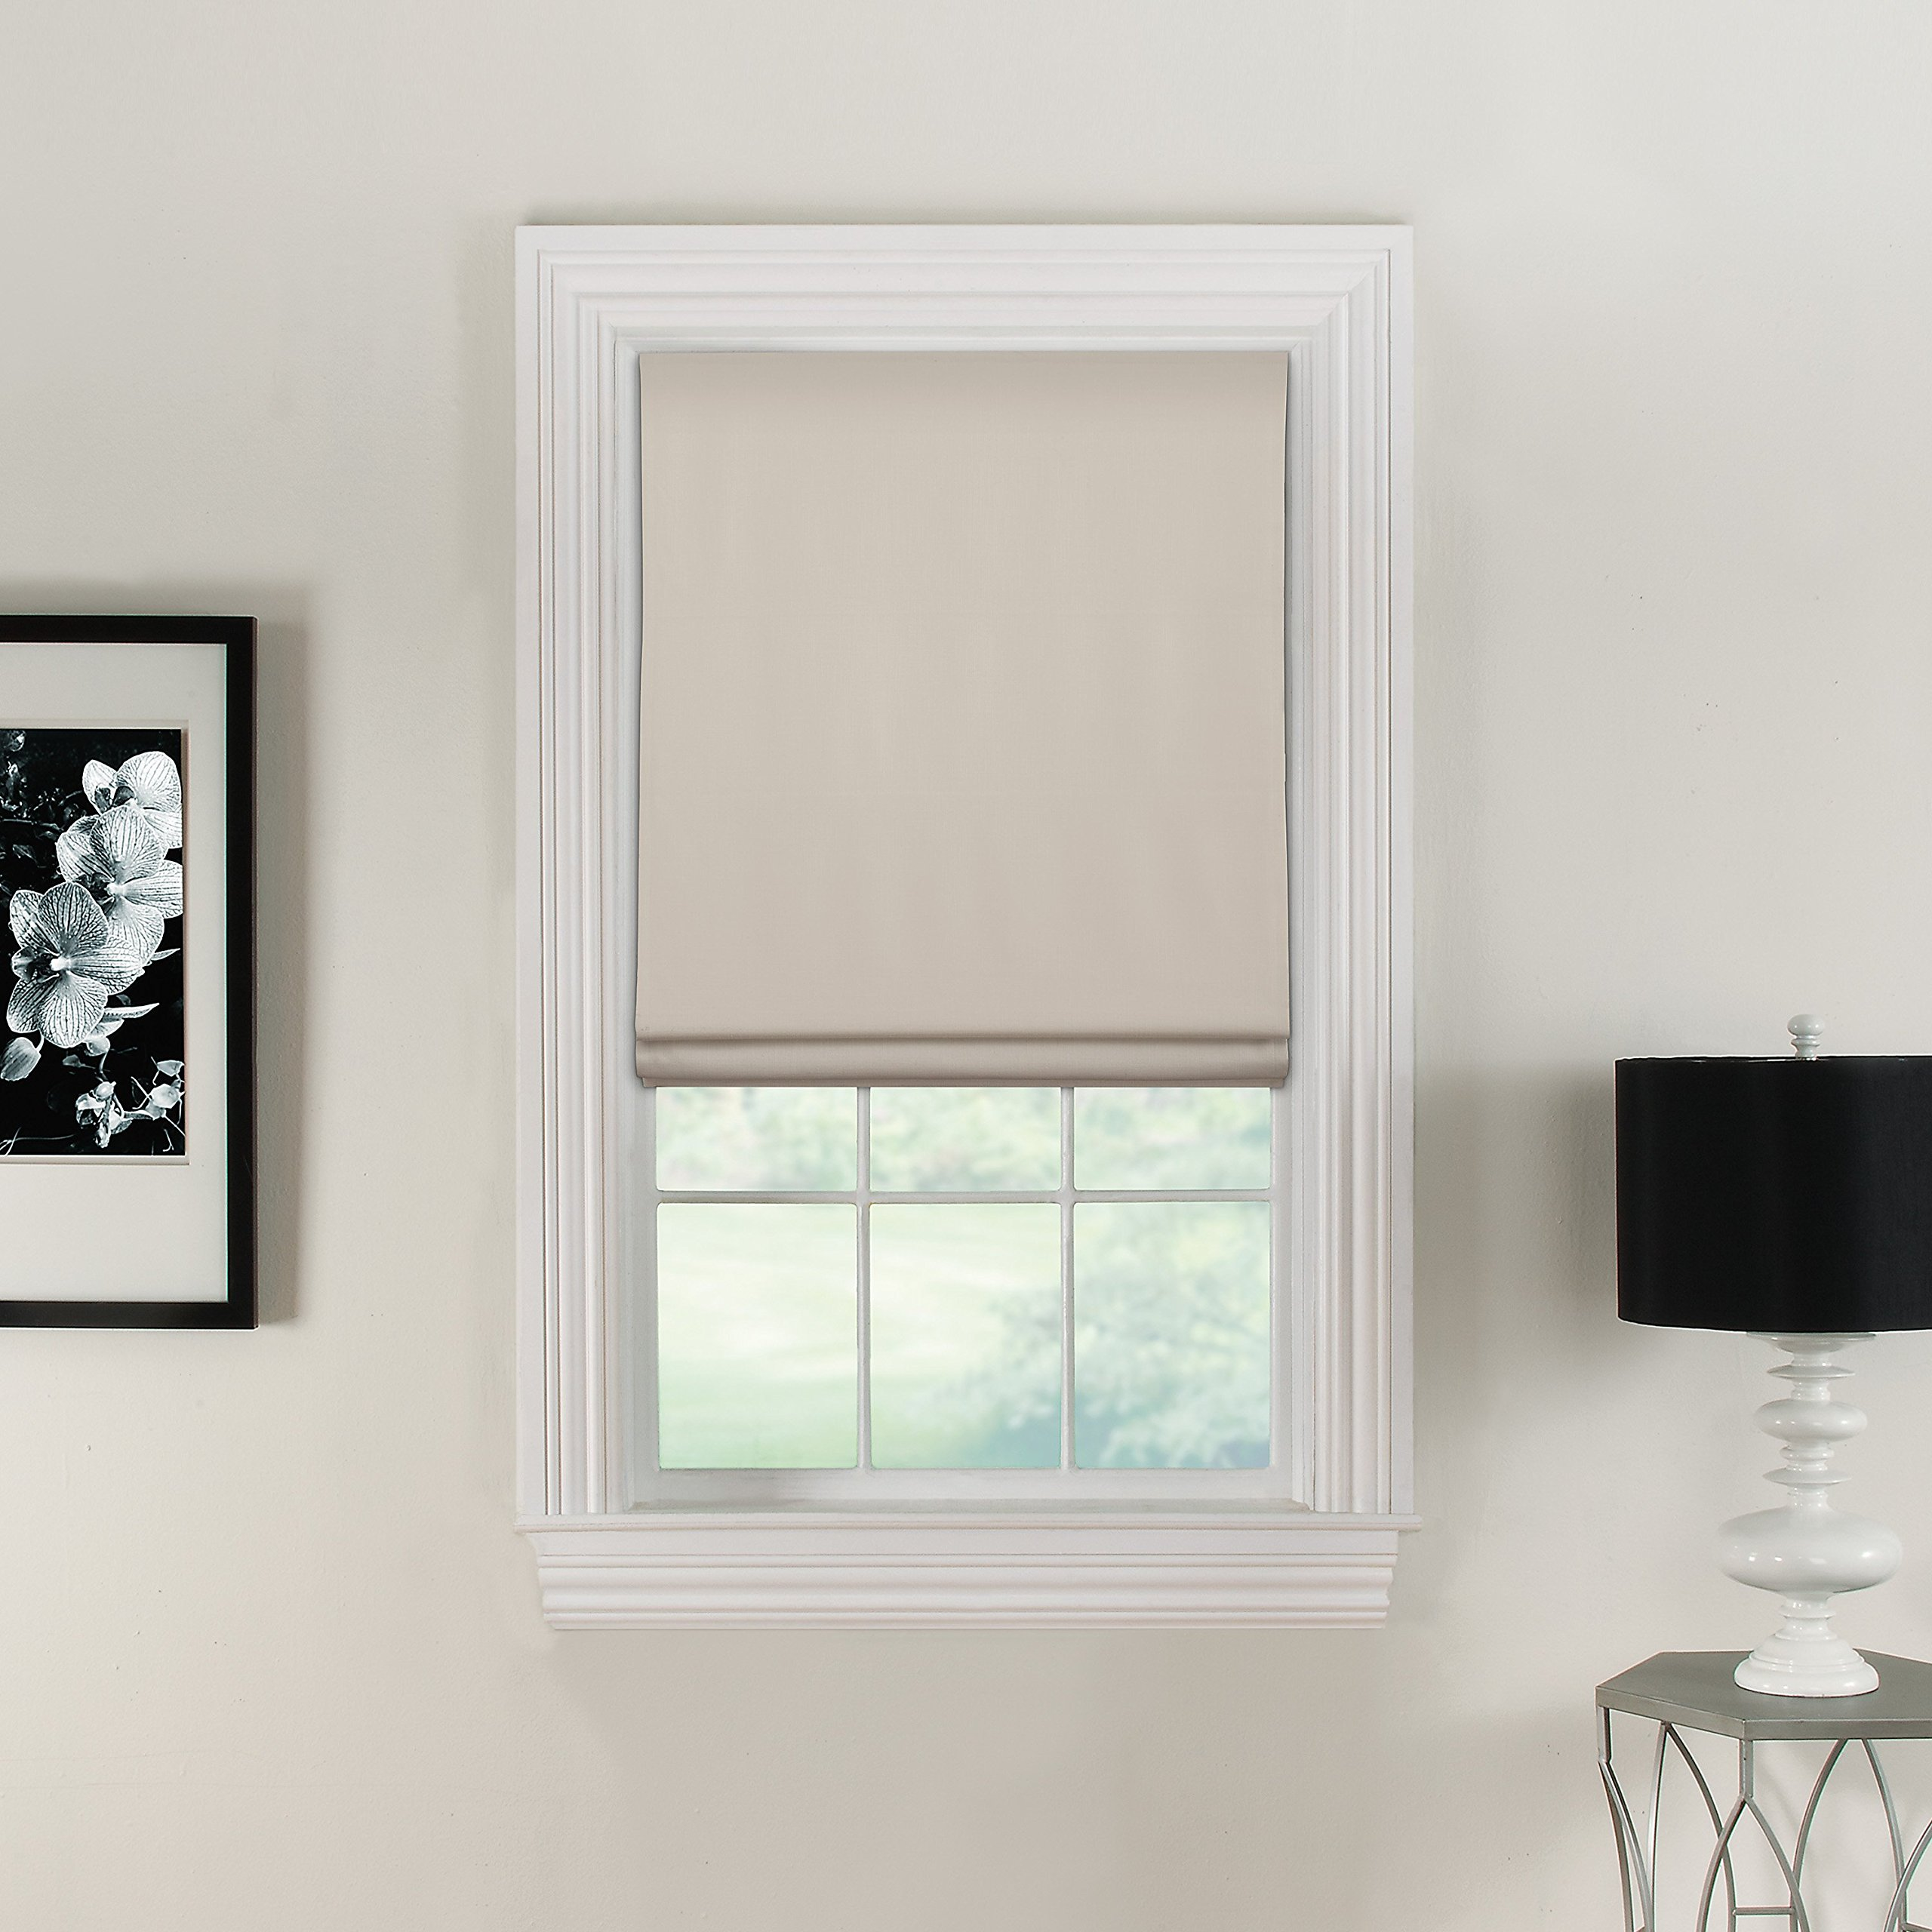 Furniture Fresh Flat Roman Shades-Blackout, Thermal-(36''W x 72''L, Ivory/OffWhite)-Linen & Polyester-Cordless by Furniture Fresh